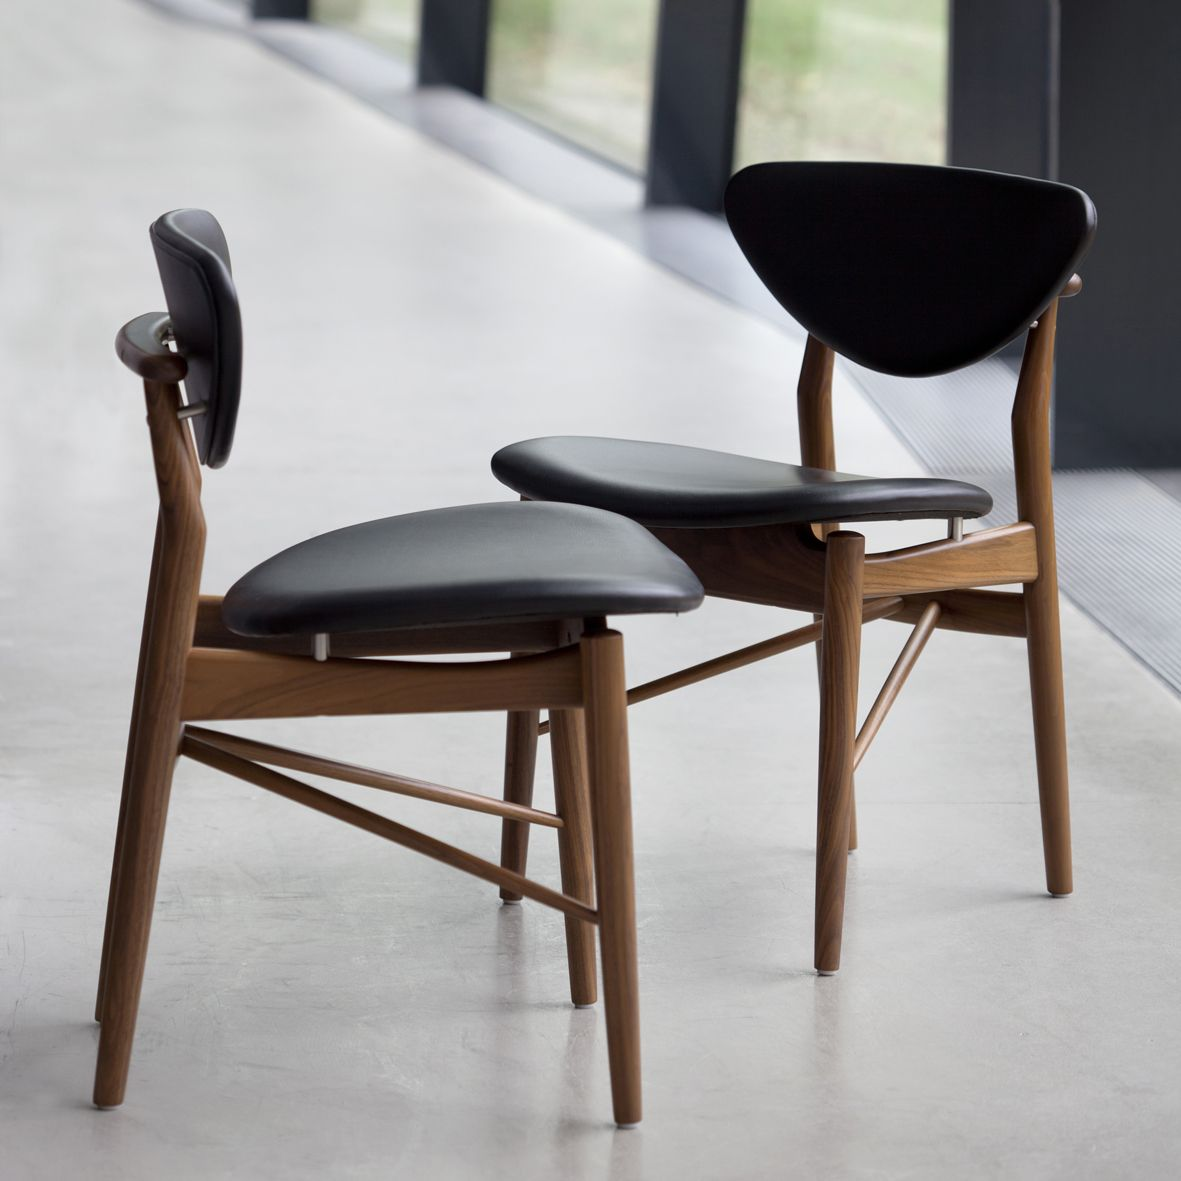 Dänische Möbeldesigner Finn Juhl 108 Chair Furniture Decor Pinterest Chair